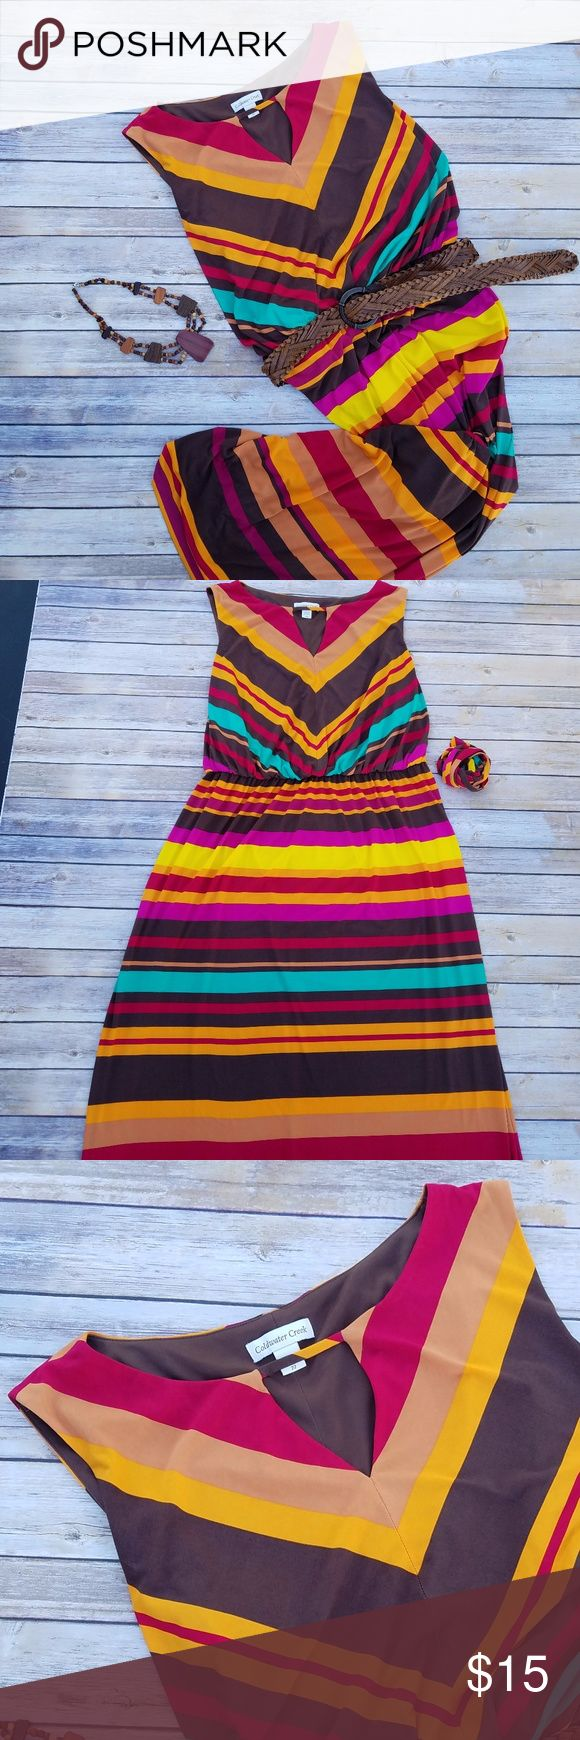 Coldwater Creek Multi-Colored Stripped Maxi Dress Coldwater Creek multi-colored horizontal striped sleeveless maxi dress w/chest cut-out, elastic waistband, brown lining, & matching fabric belt.  Size: 22 Material: 95% polyester & 5% spandex, shell & 100% polyester, lining  Measurements [Approximately]: Strap width: 2.75 in Chest width: 28 3/8 in, loose & 30 3/8 in, stretched Waistband width: 21 in, loose & 31.5 in, stretched Top of shoulder to hem: 80 in Top of shoulder to waistband: 19 in…